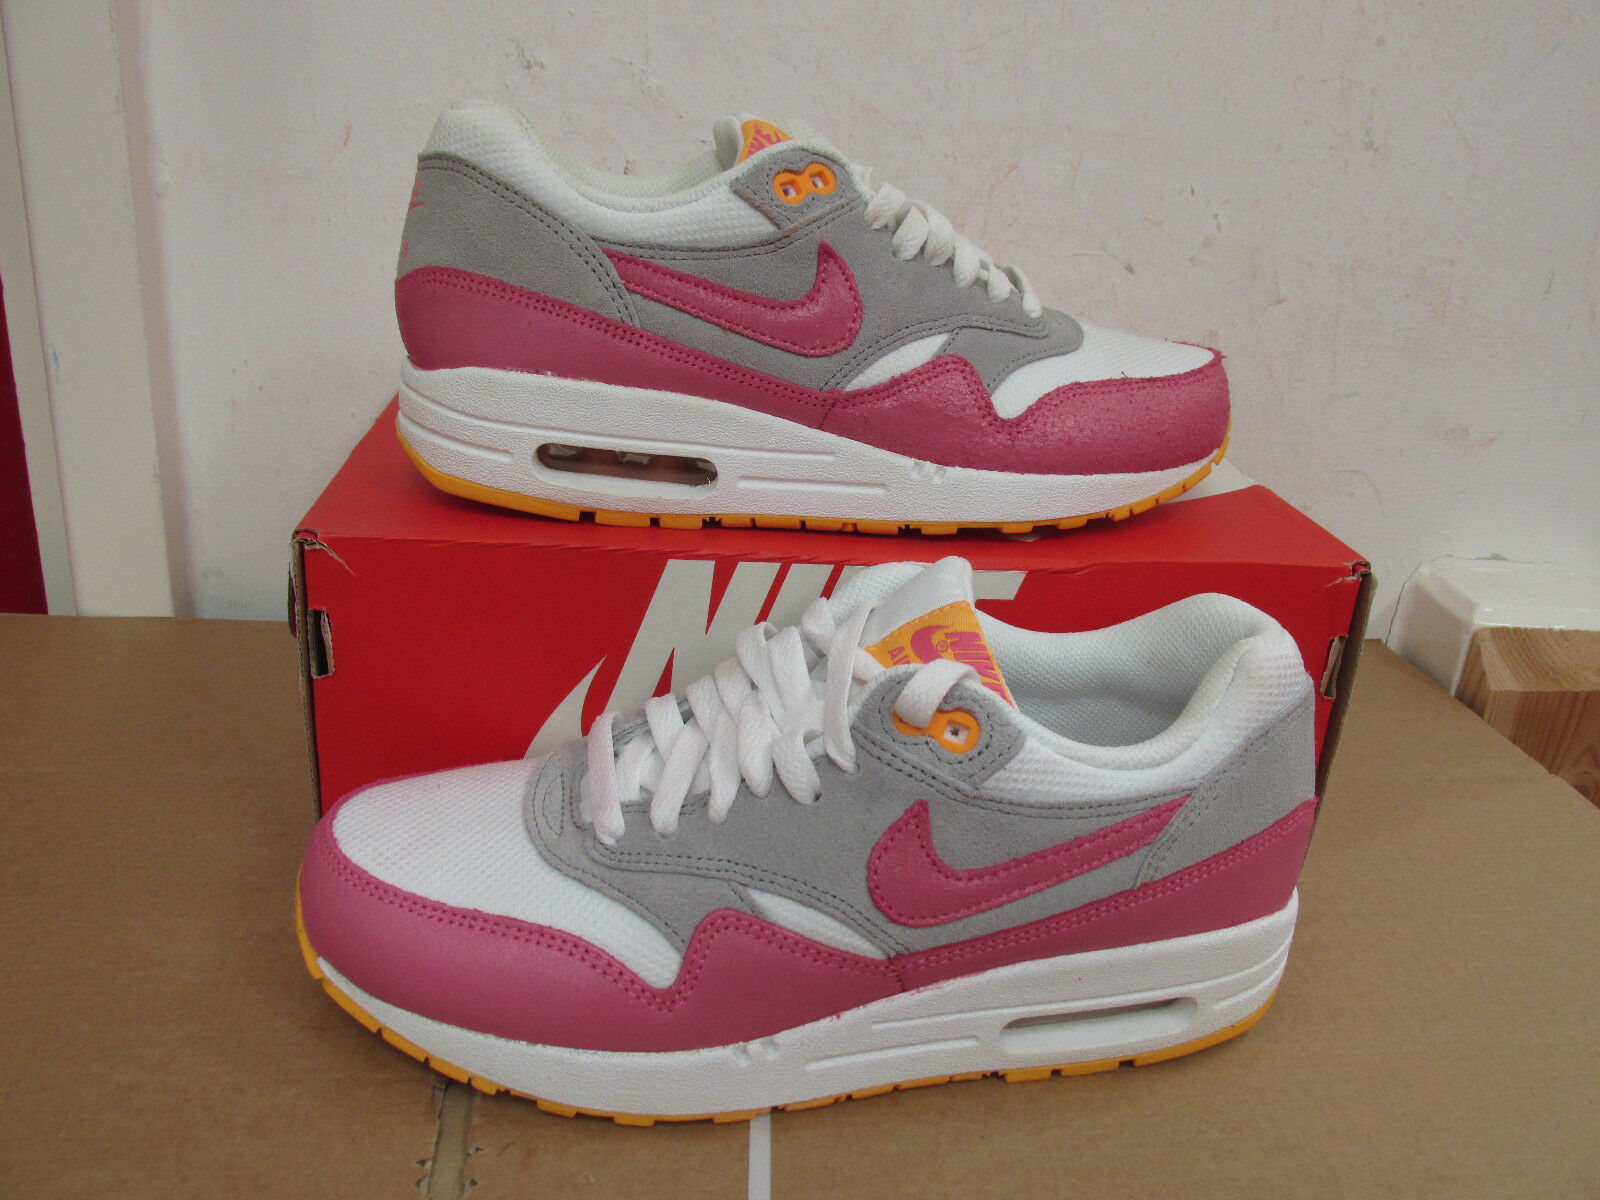 Nike Damenschuhe 107 Air Max 1 Essential Trainers 599820 107 Damenschuhe Sneakers Schuhes CLEARANCE cff5fd